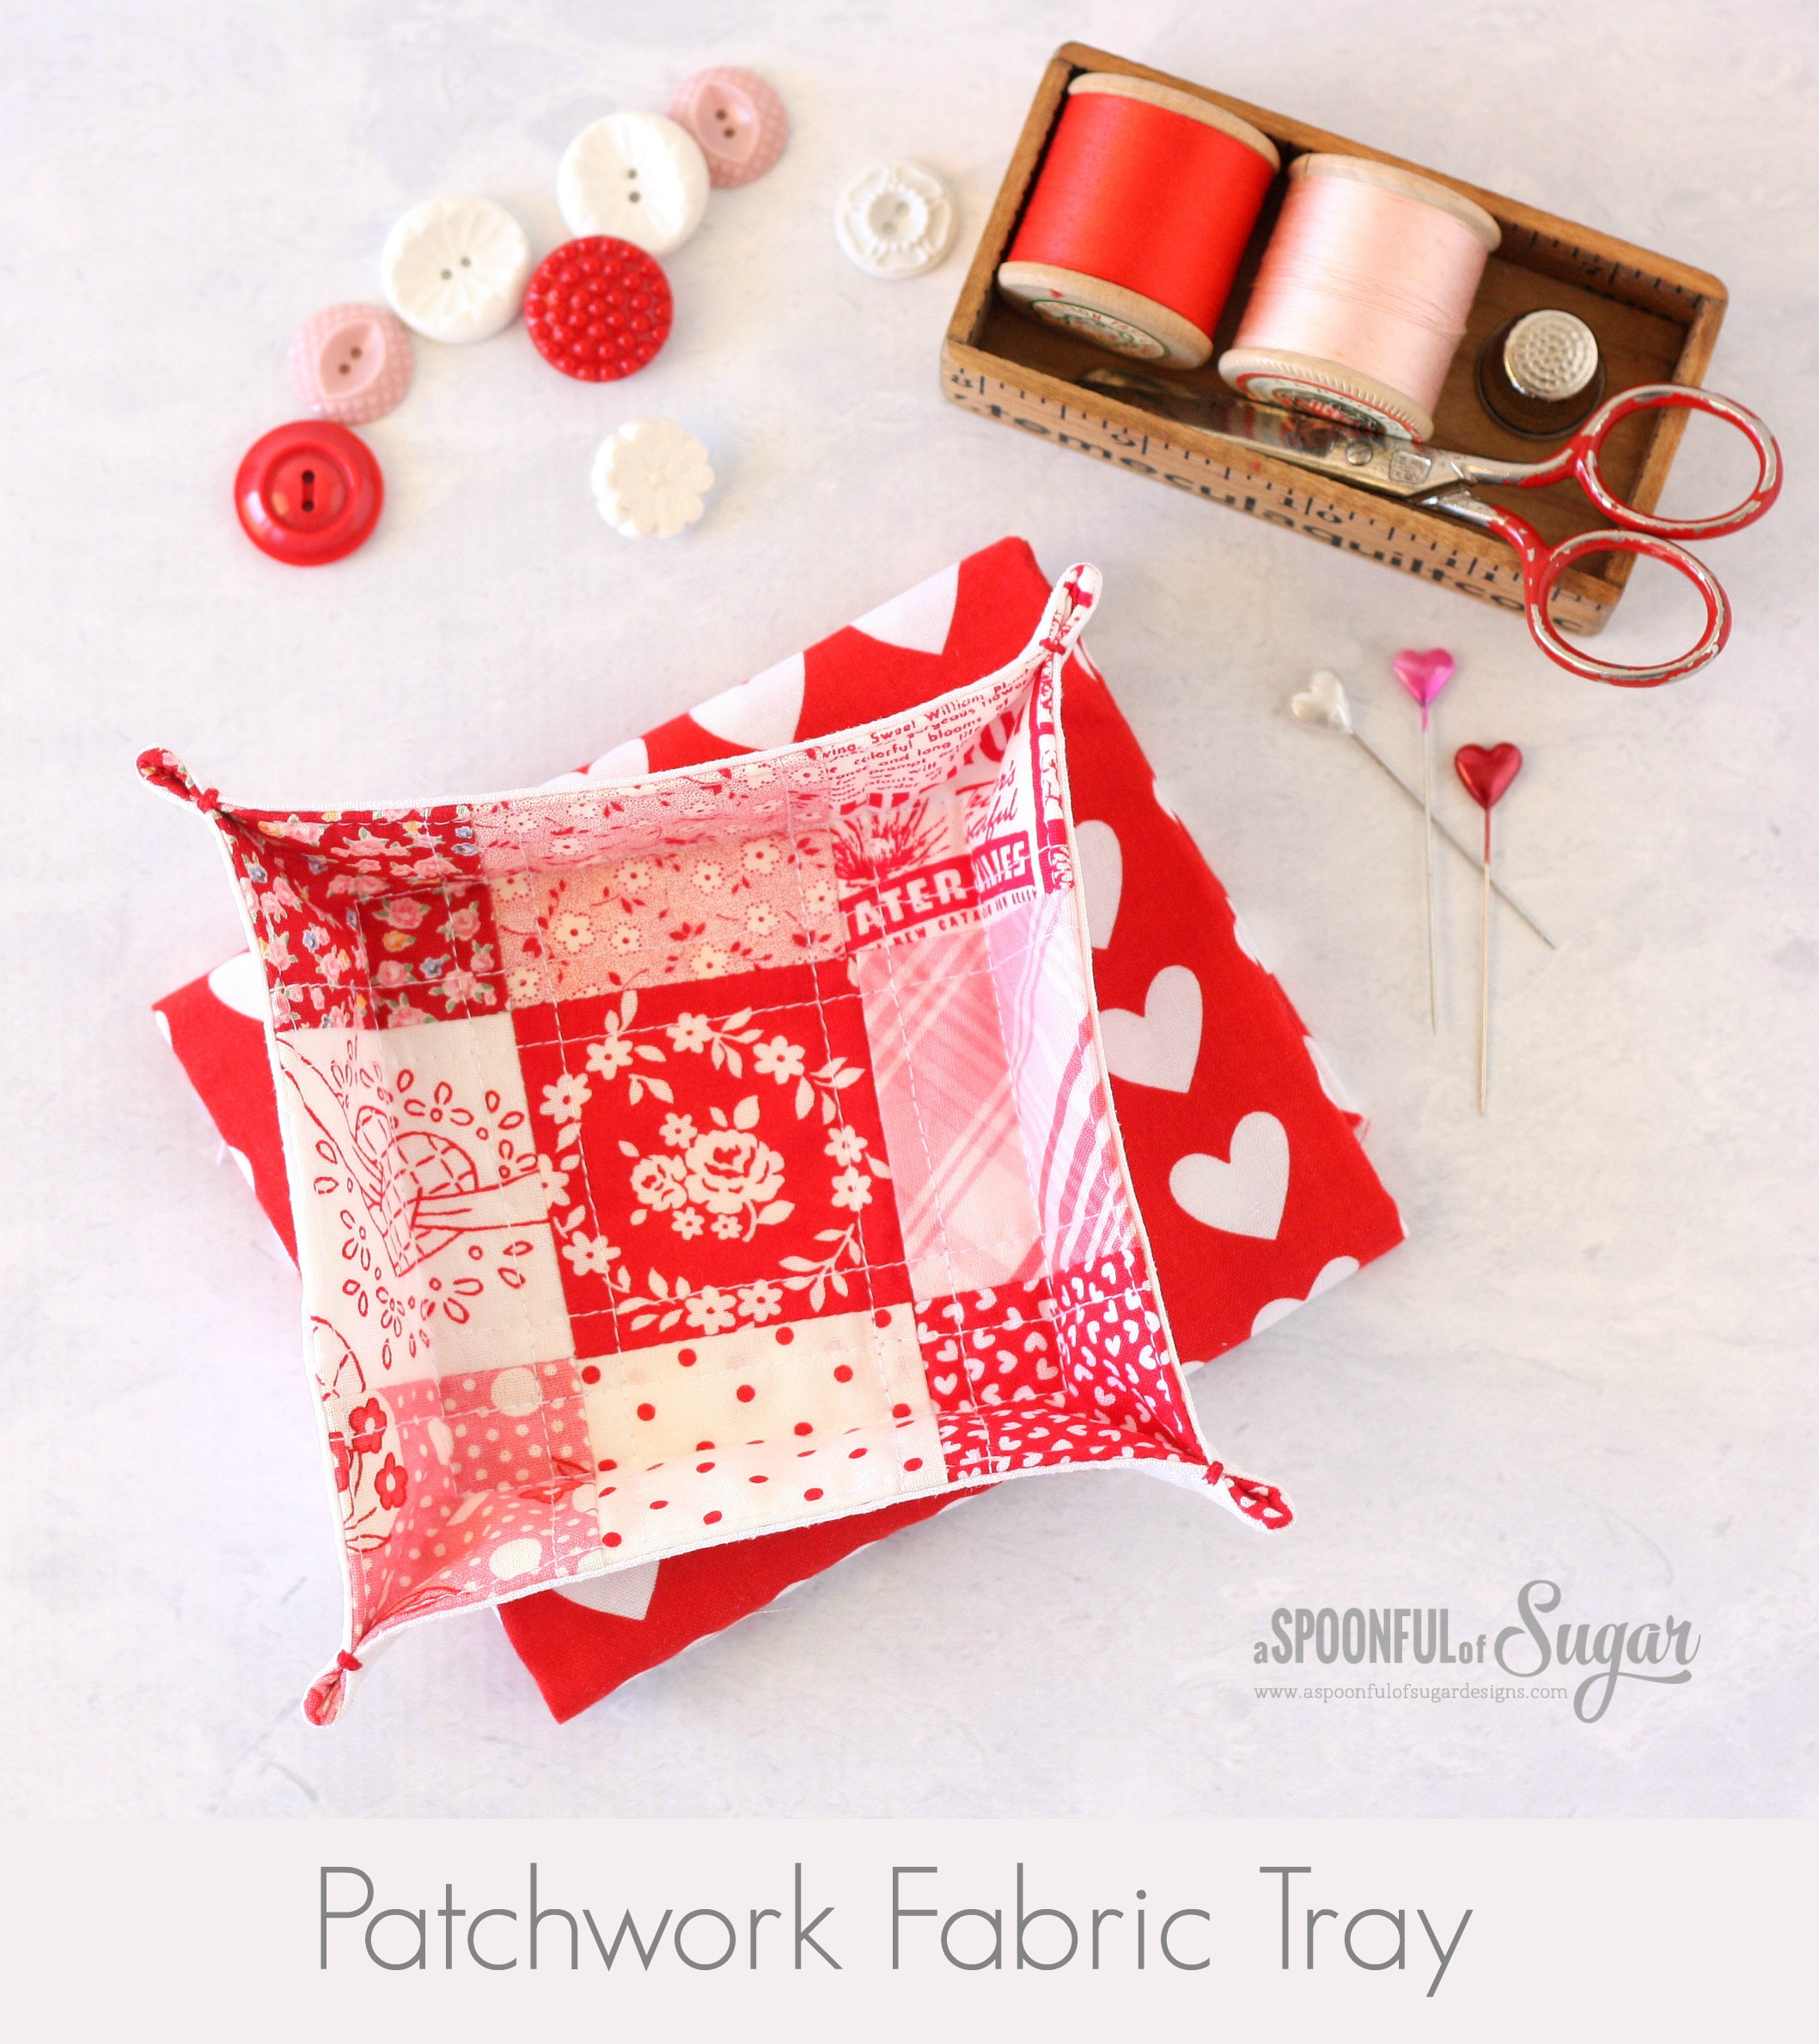 Patchwork Fabric Tray by A Spoonful of Sugar